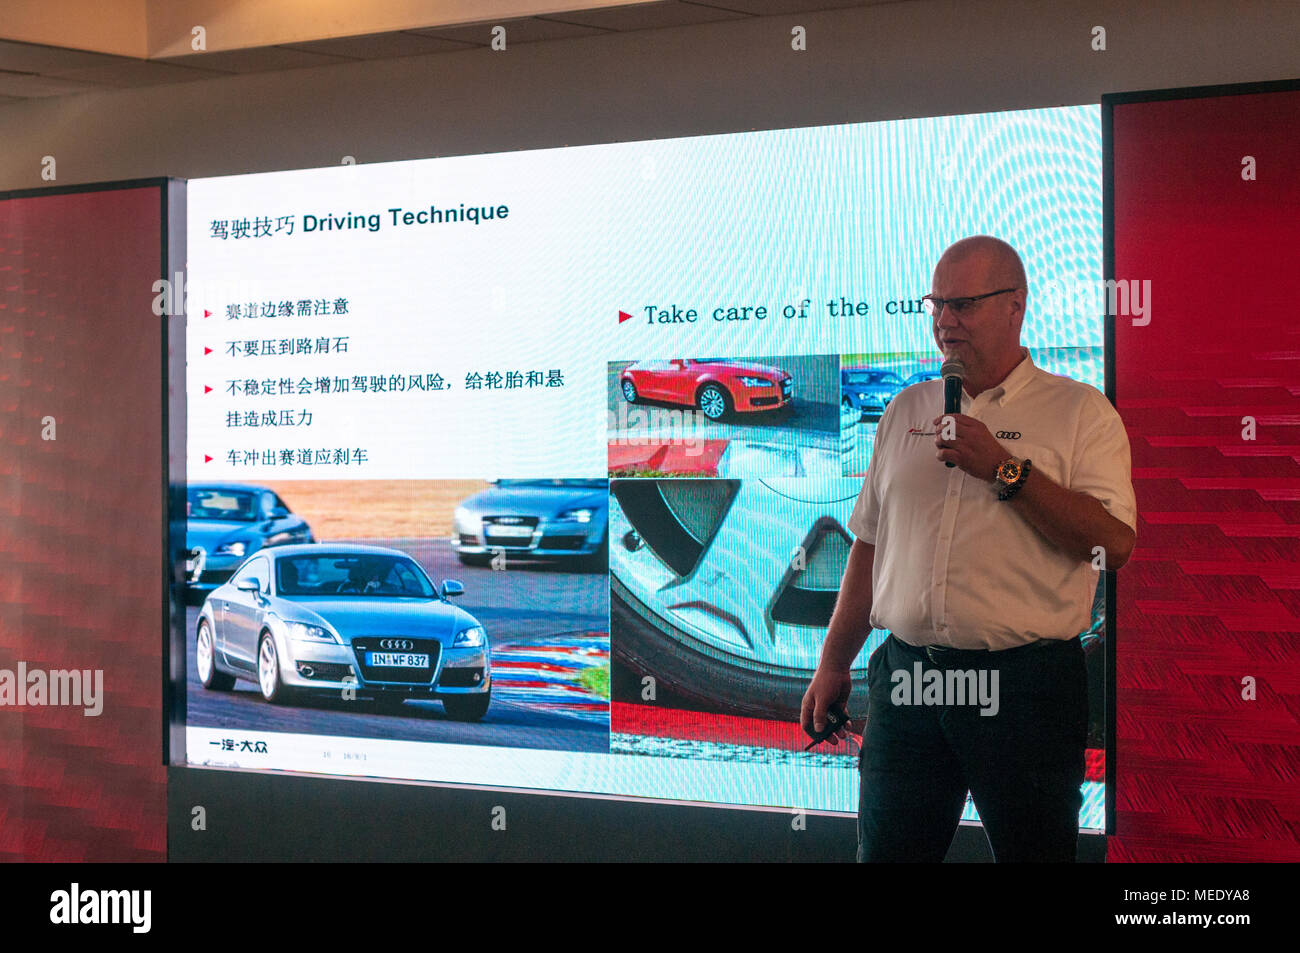 Talk on cornering technique before going on the track at an Audi Driving Experience Day held at the Shanghai International Circuit. - Stock Image